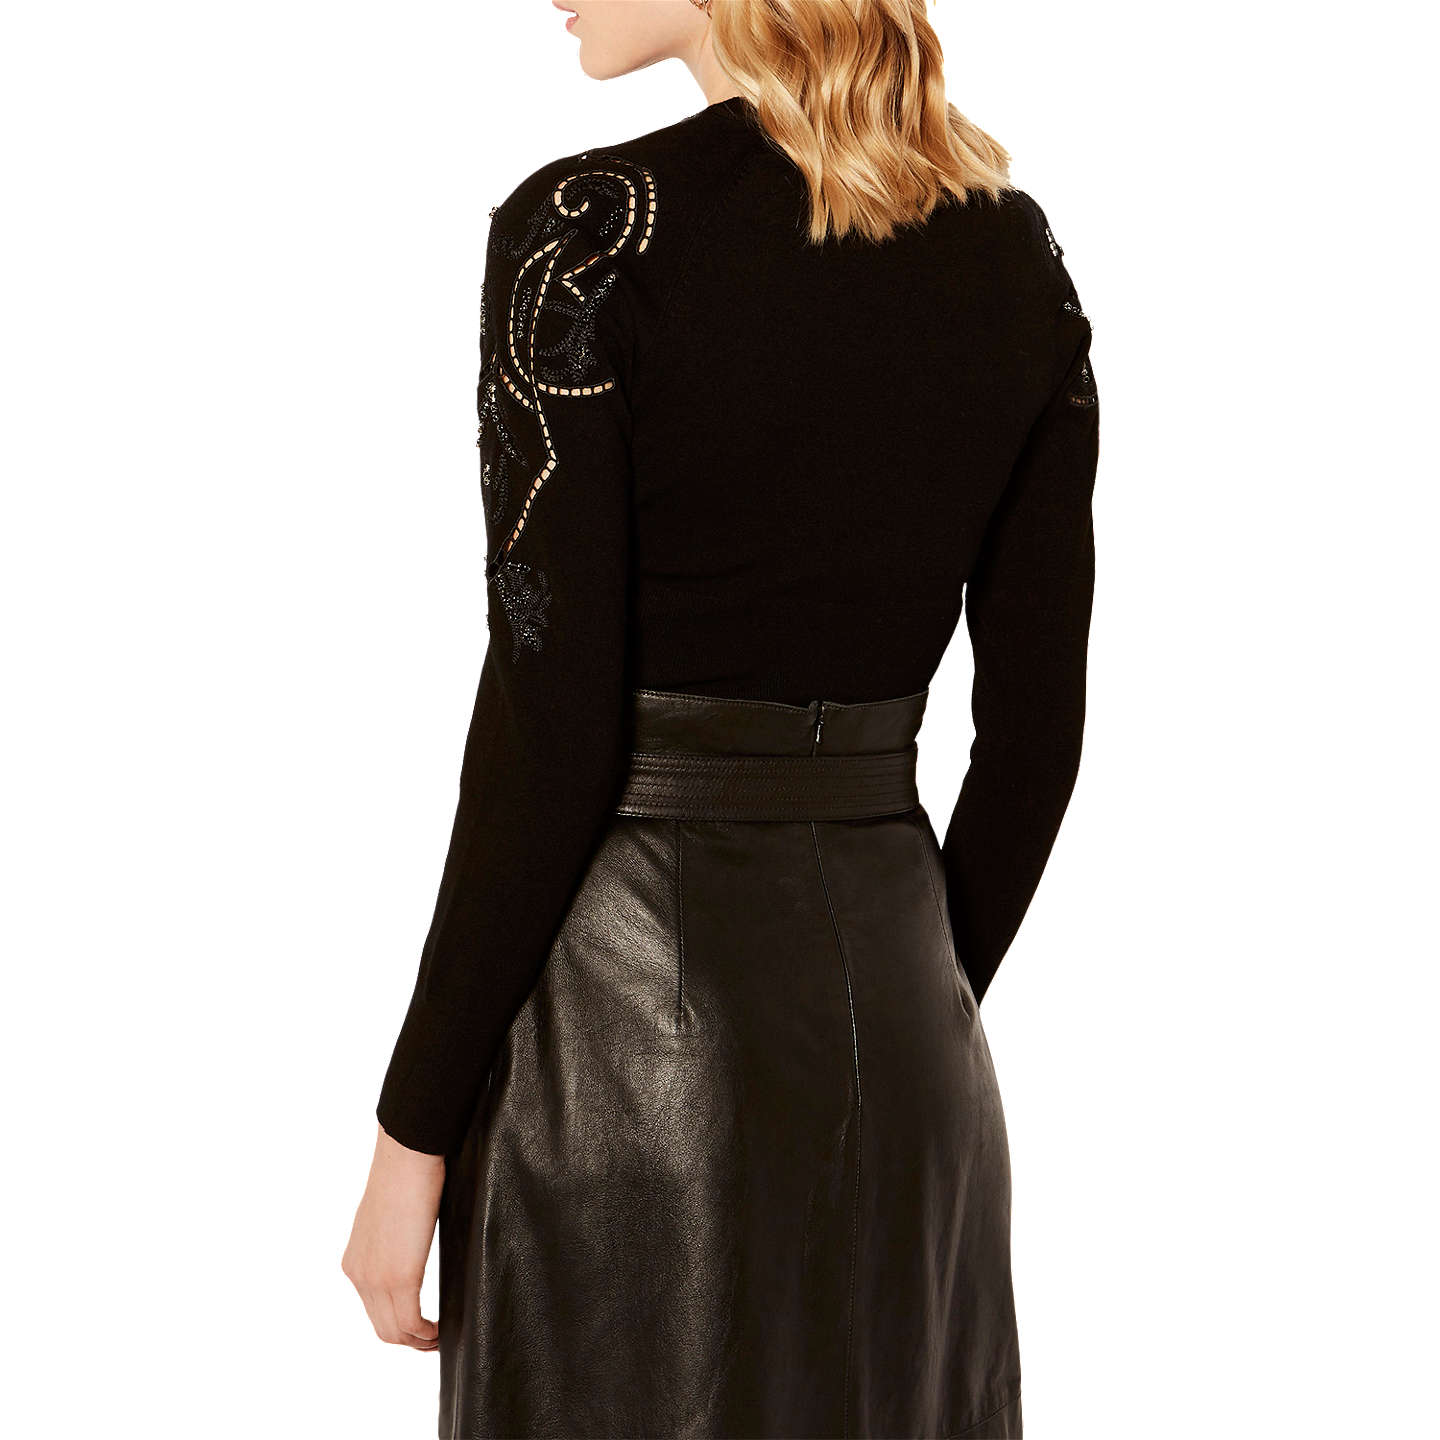 BuyKaren Millen Beaded Cutwork Cardigan, Black, XS Online at johnlewis.com